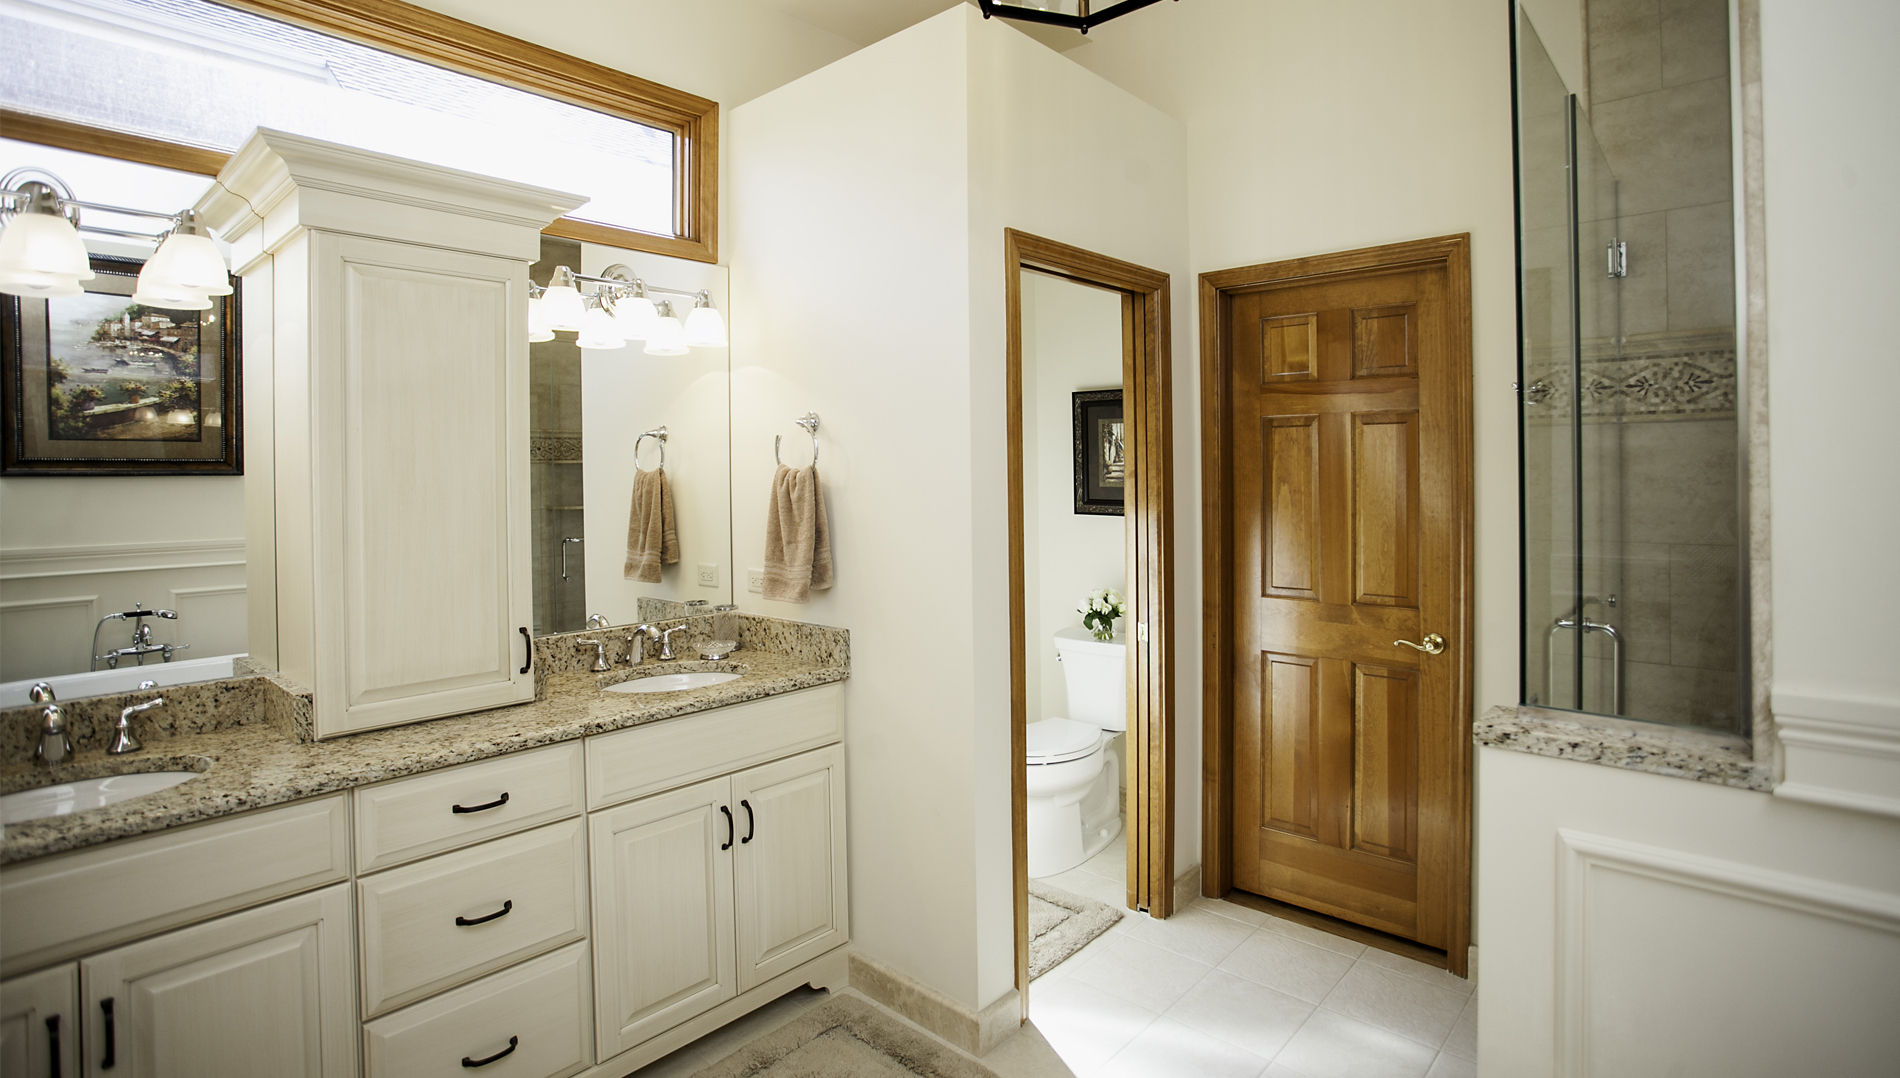 Rest Relaxation At White Eagle - Bathroom vanities naperville